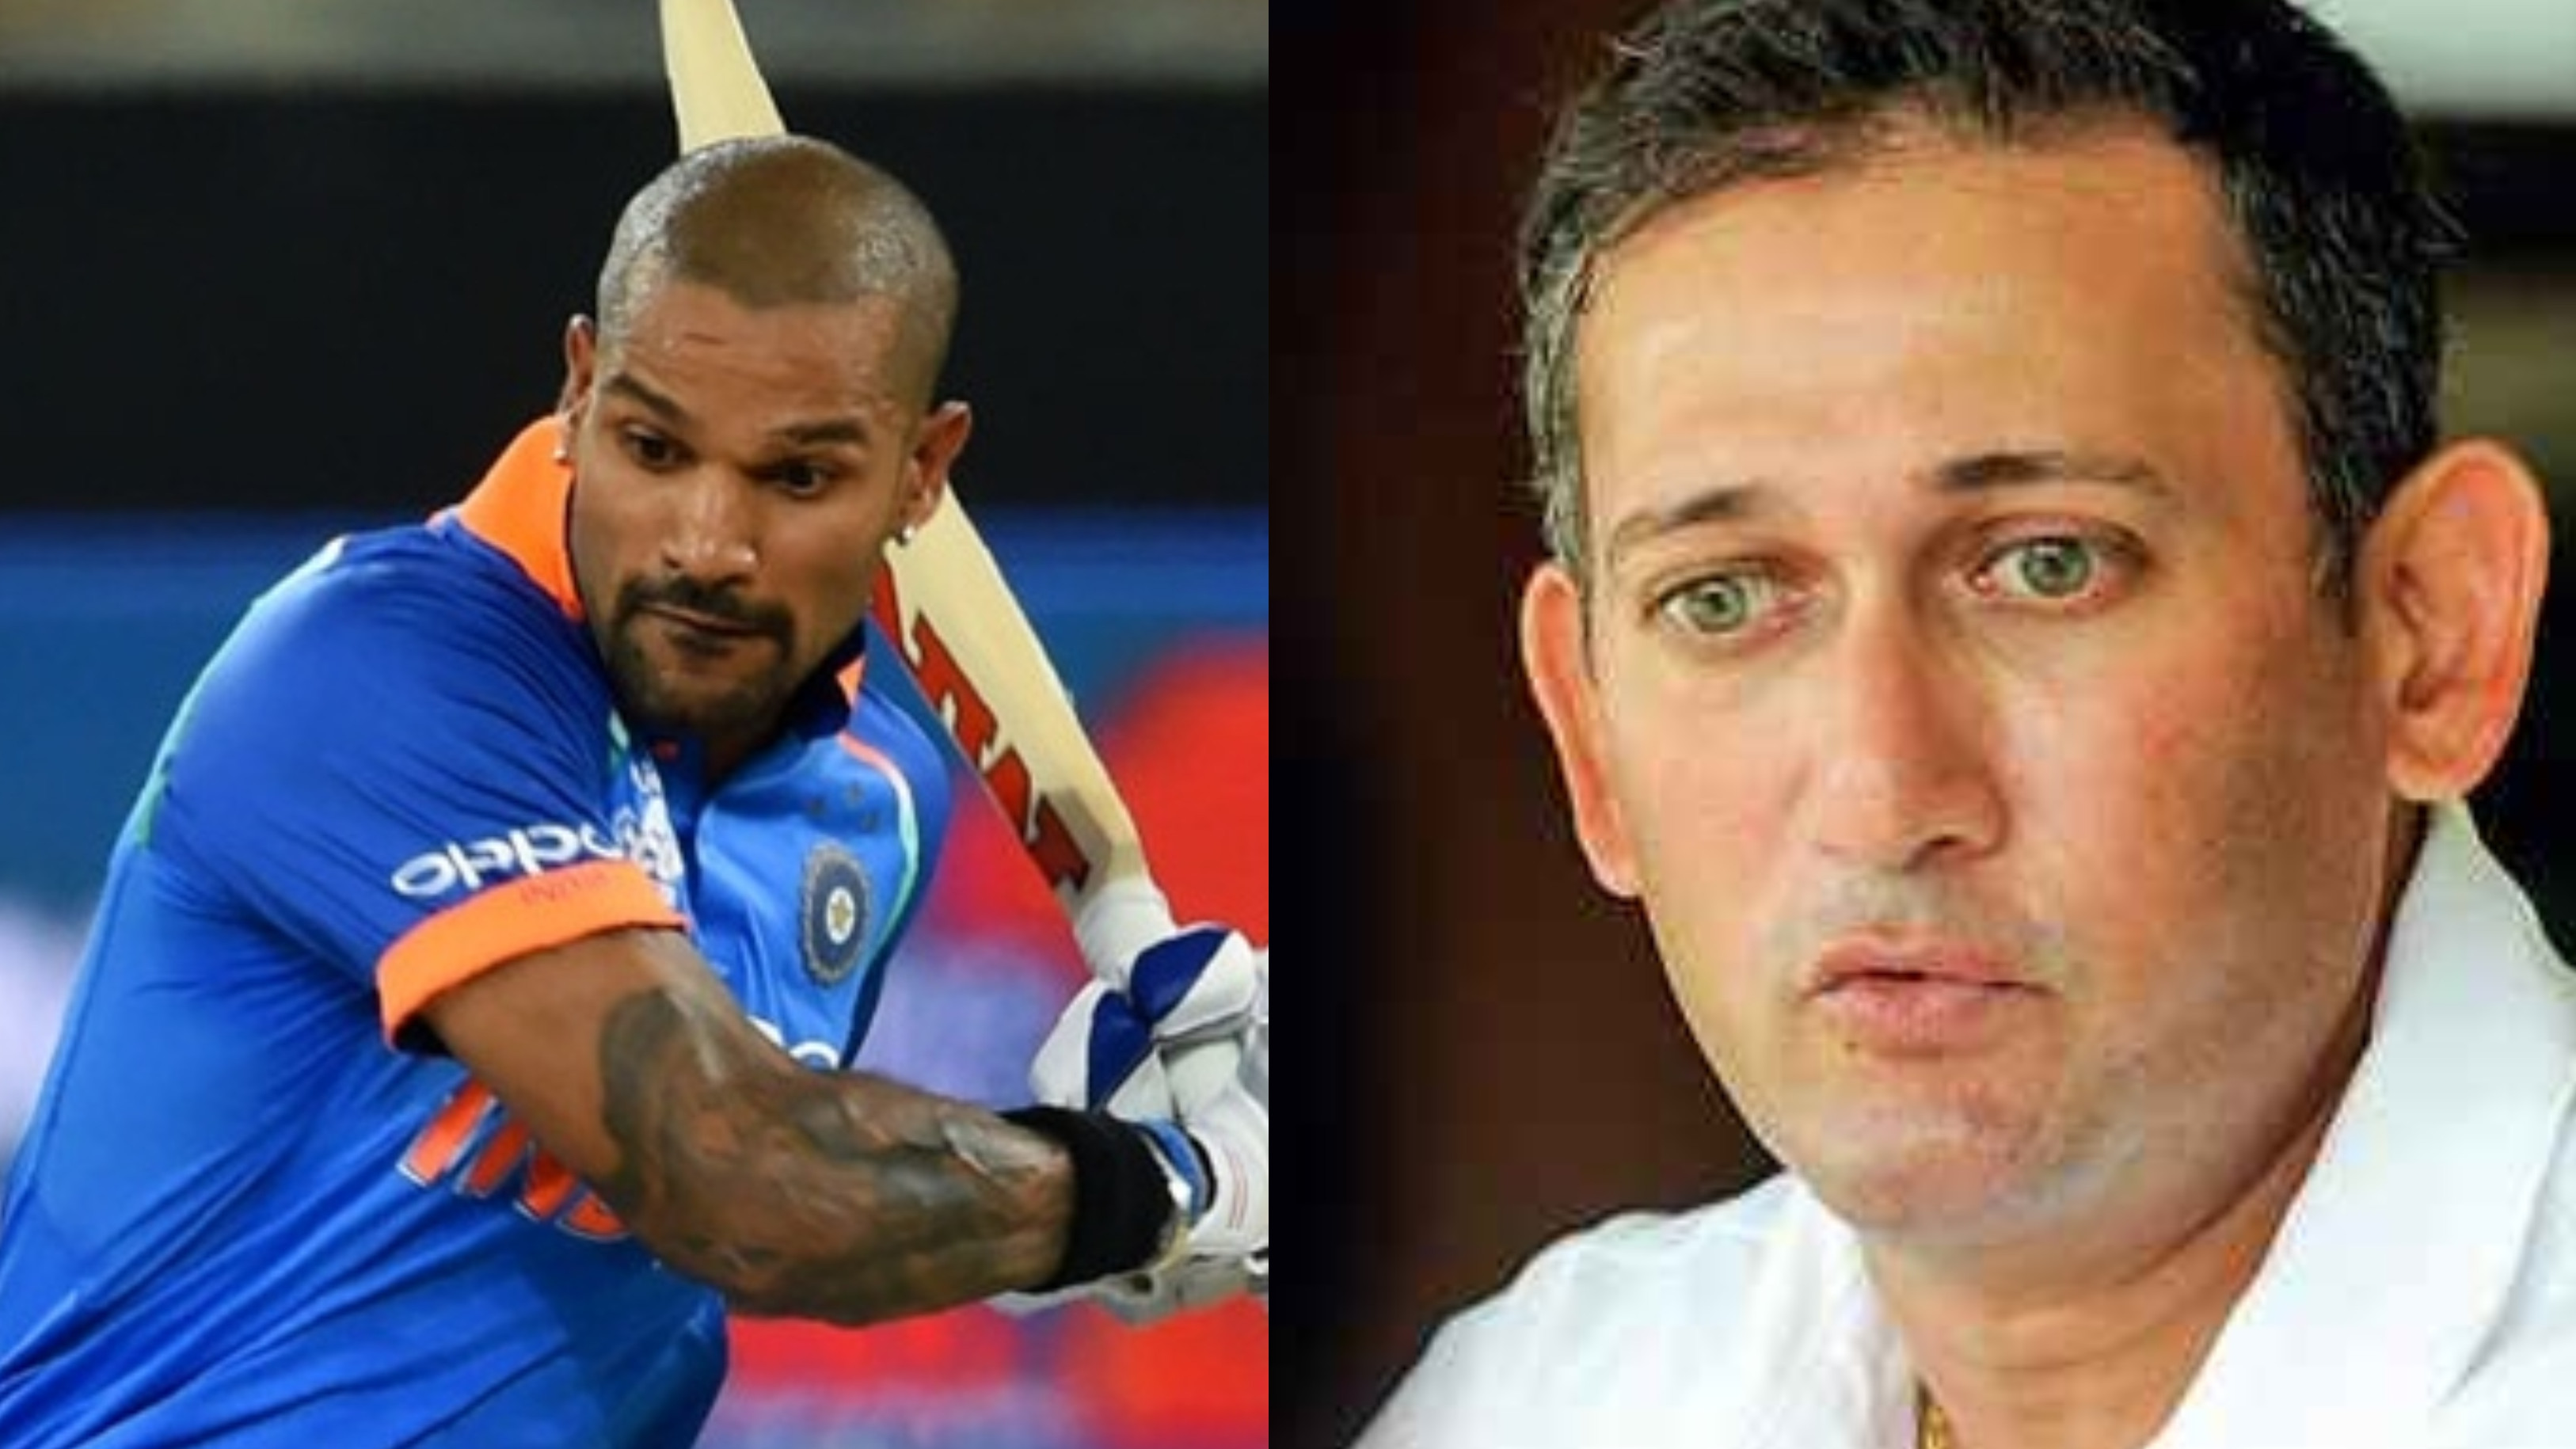 IND v WI 2018: Ajit Agarkar says Shikhar Dhawan will be disappointed with his performances in the ODI series